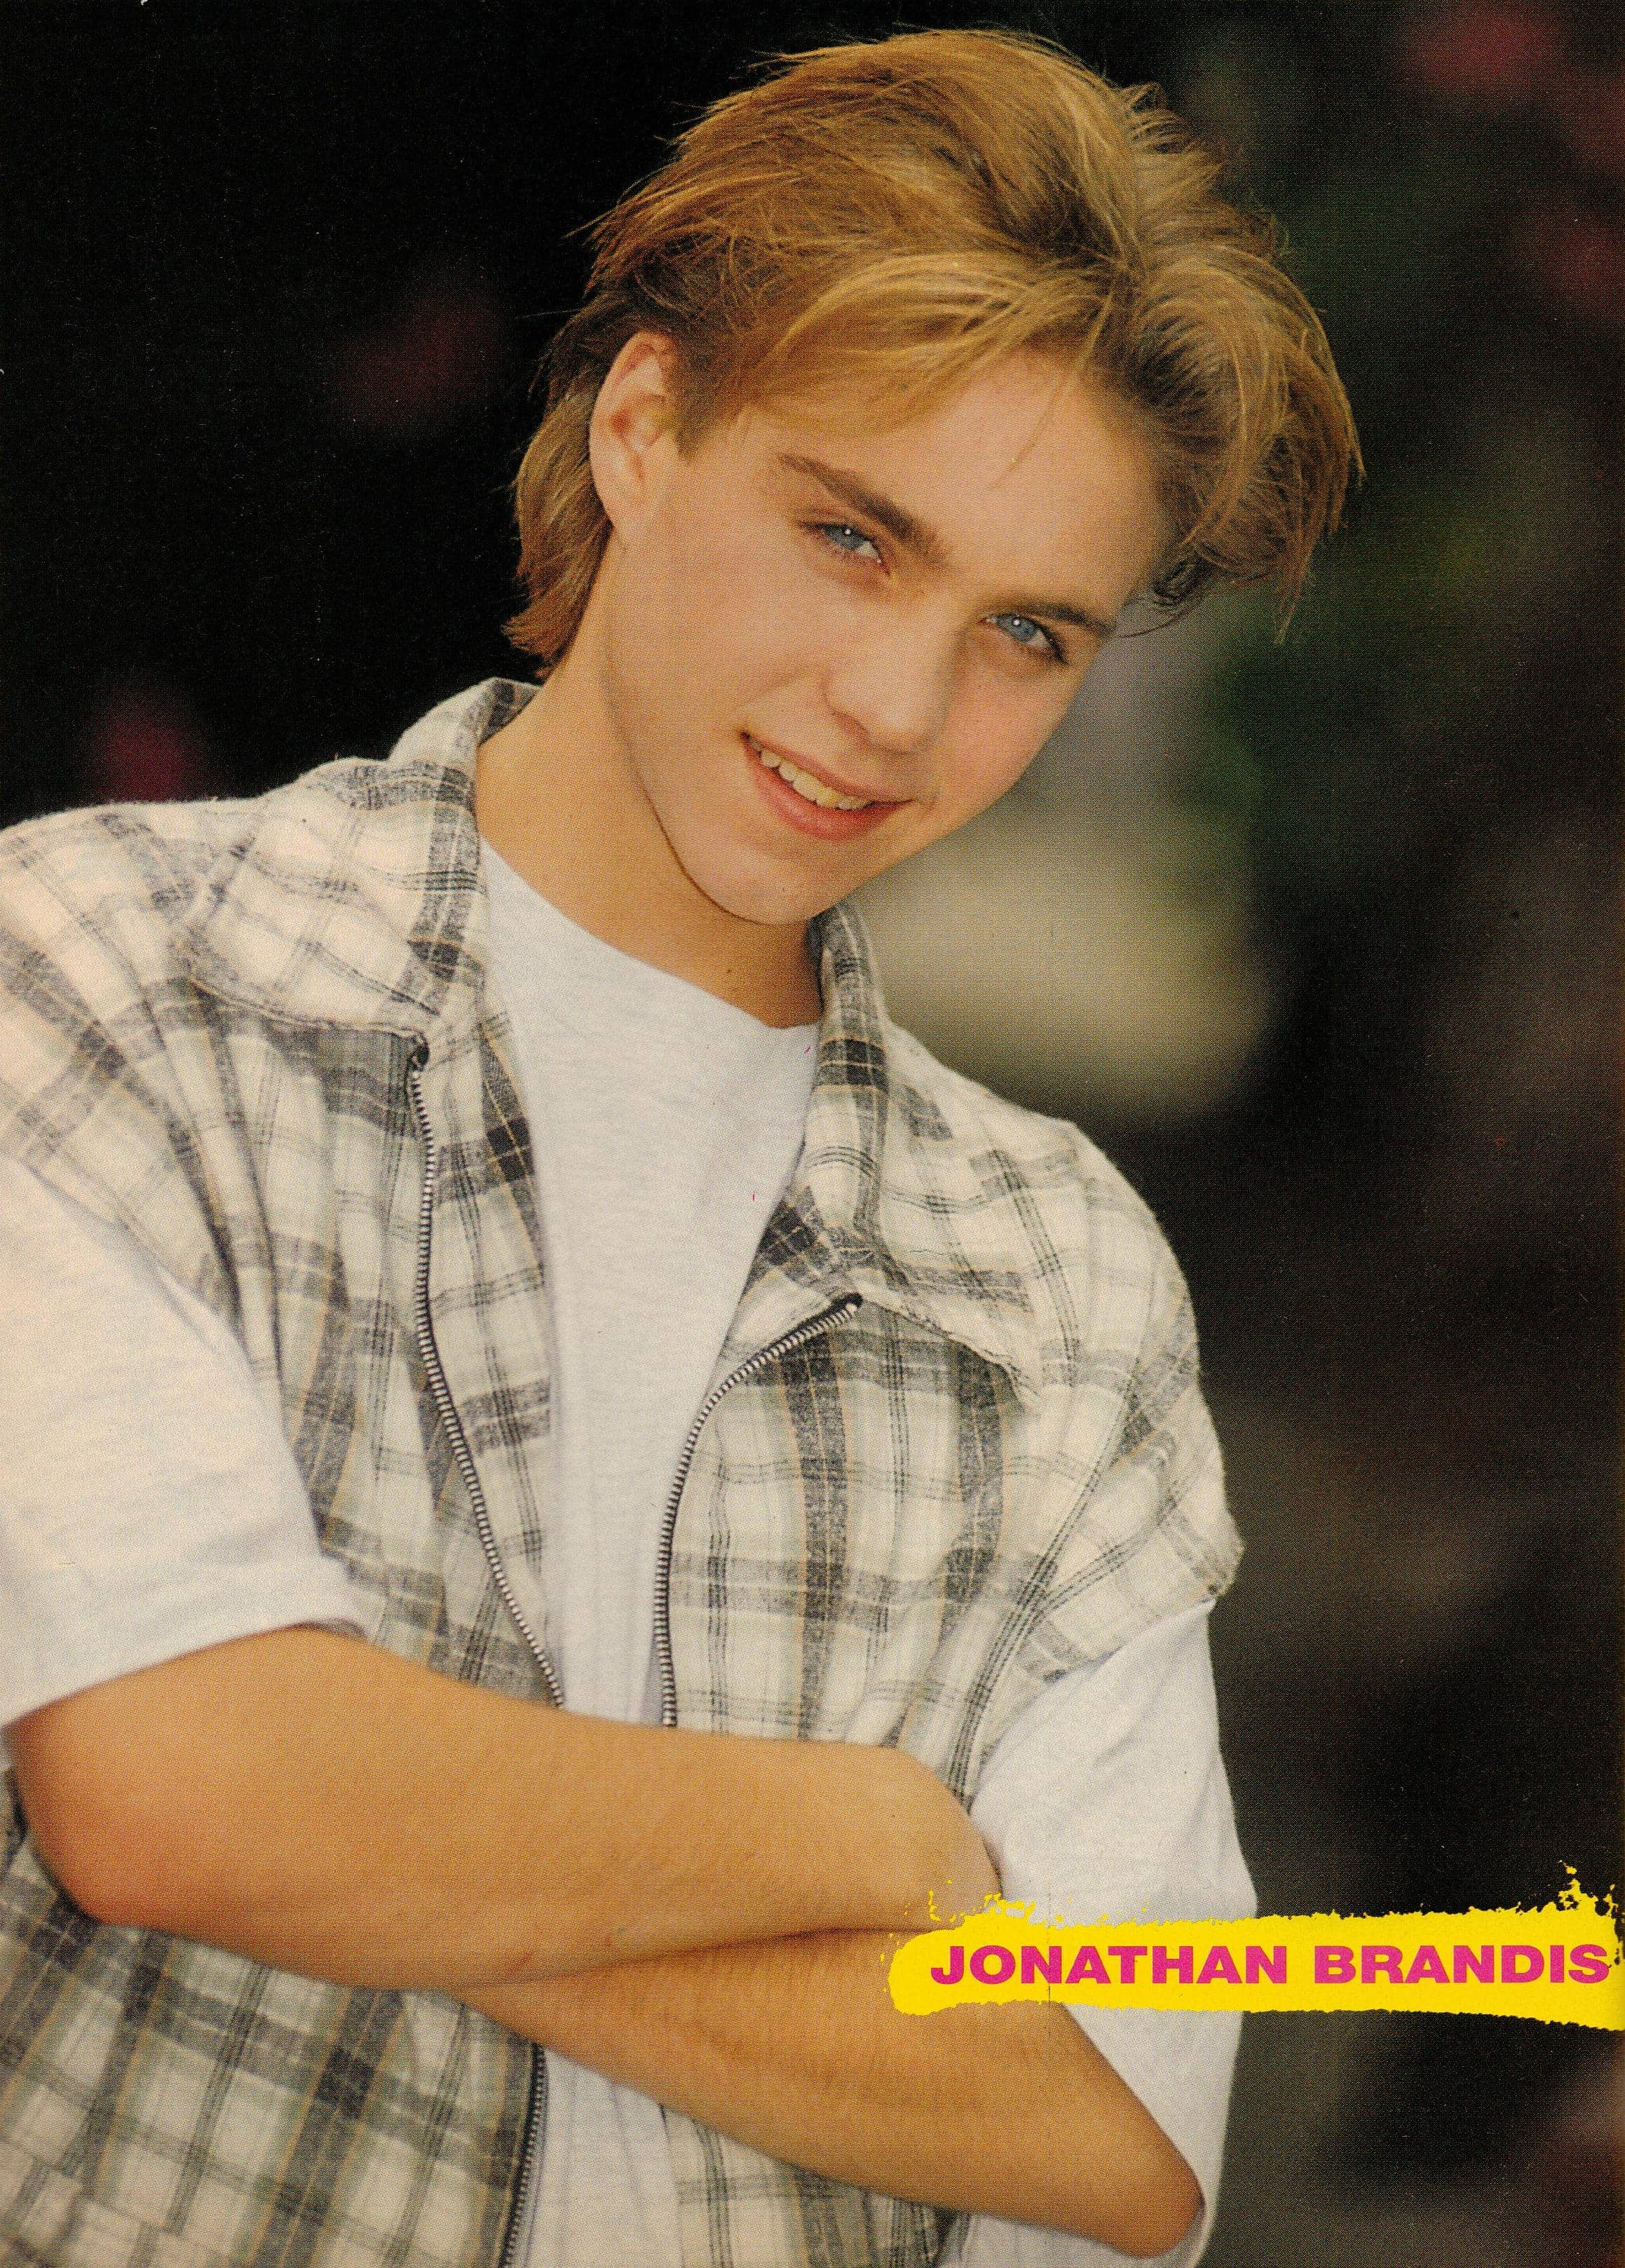 Jonathan Brandis Download